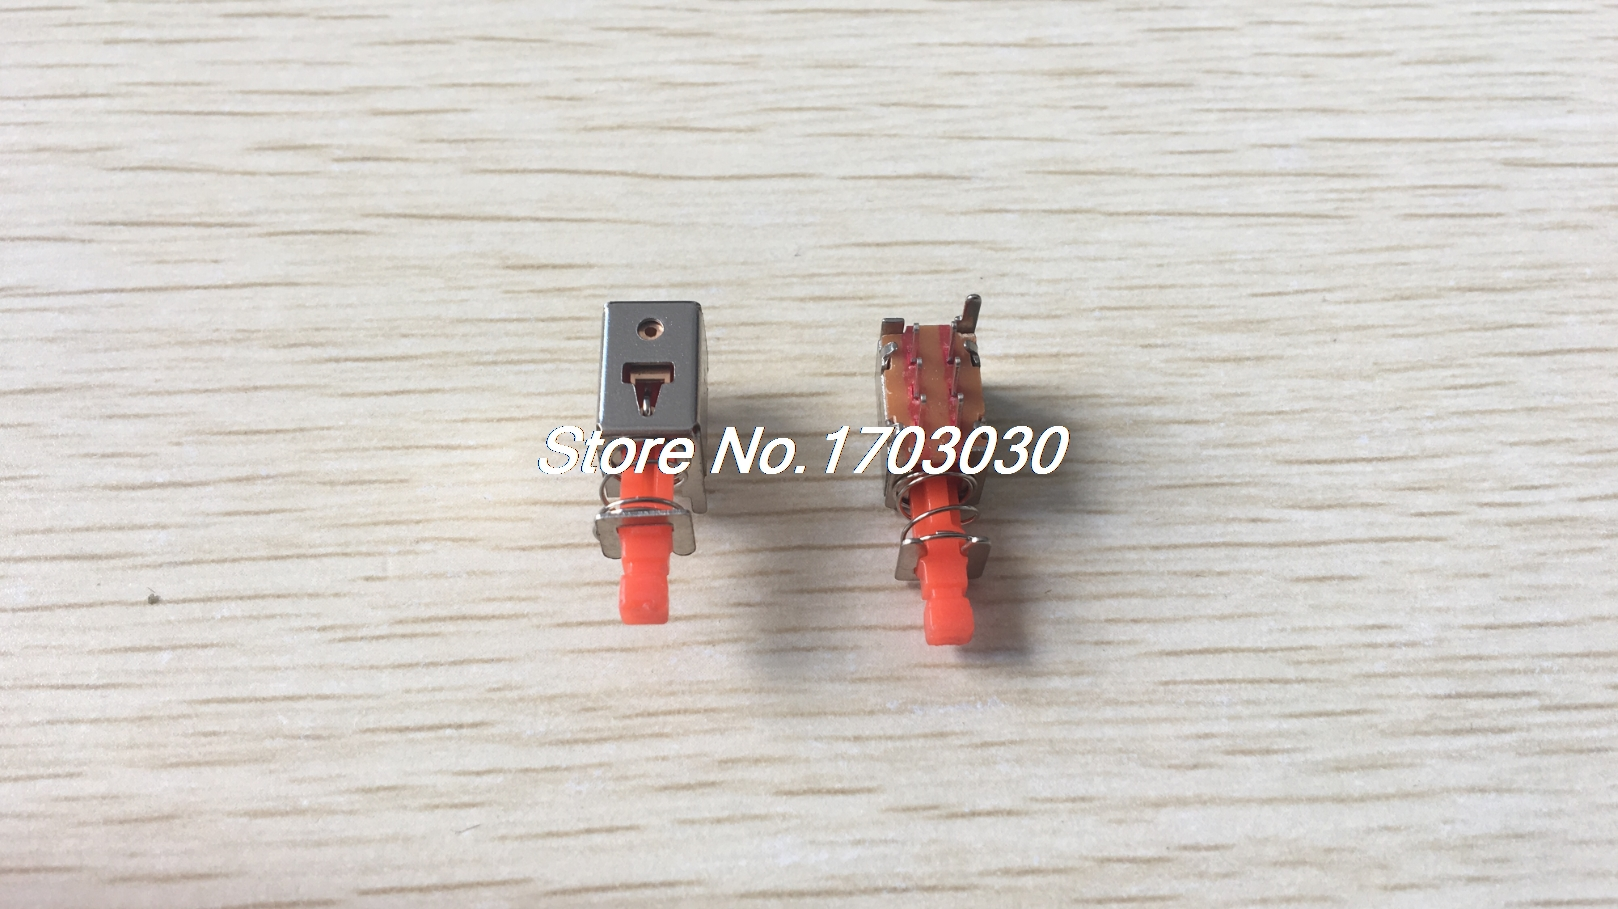 10 Pcs Self Lock Latching Uni-Direction PCB Push Button Switch DPDT 6 Pin g65y high quality 30pcs lot square 8x8x13mm 6 pin dpdt mini push button self locking switch g65 multimeter switch hot sale 2017